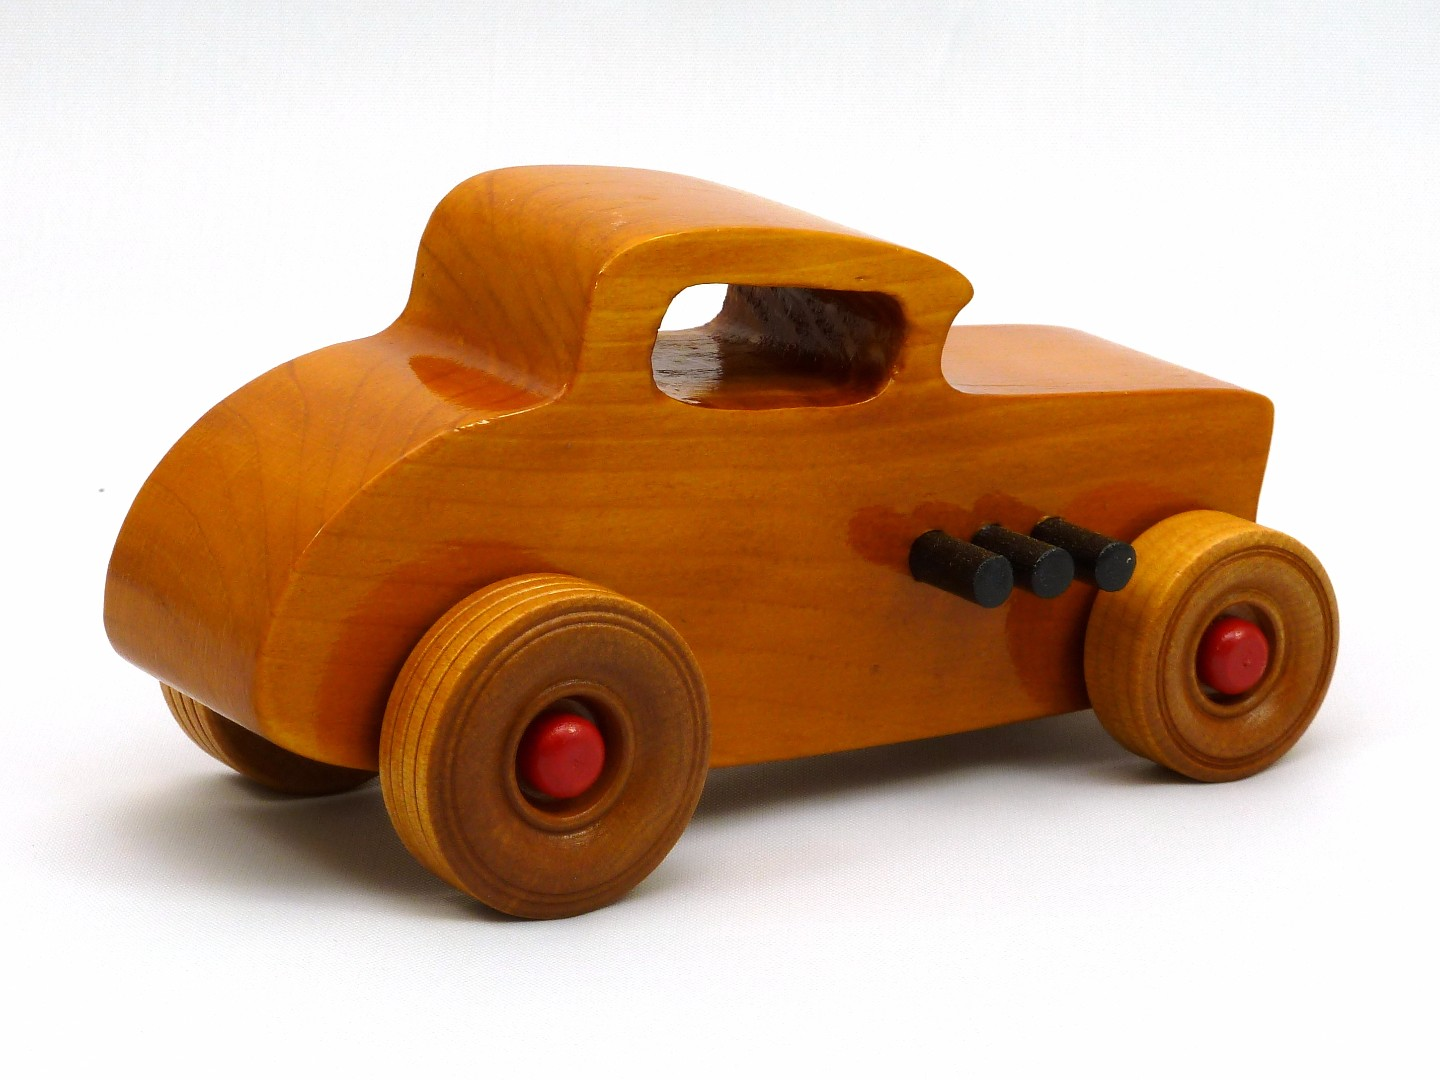 20170902-171630 Wooden Toy Car - Hot Rod Freaky Ford - 32 Deuce Coupe - Pine - Amber Shellac - Red.jpg